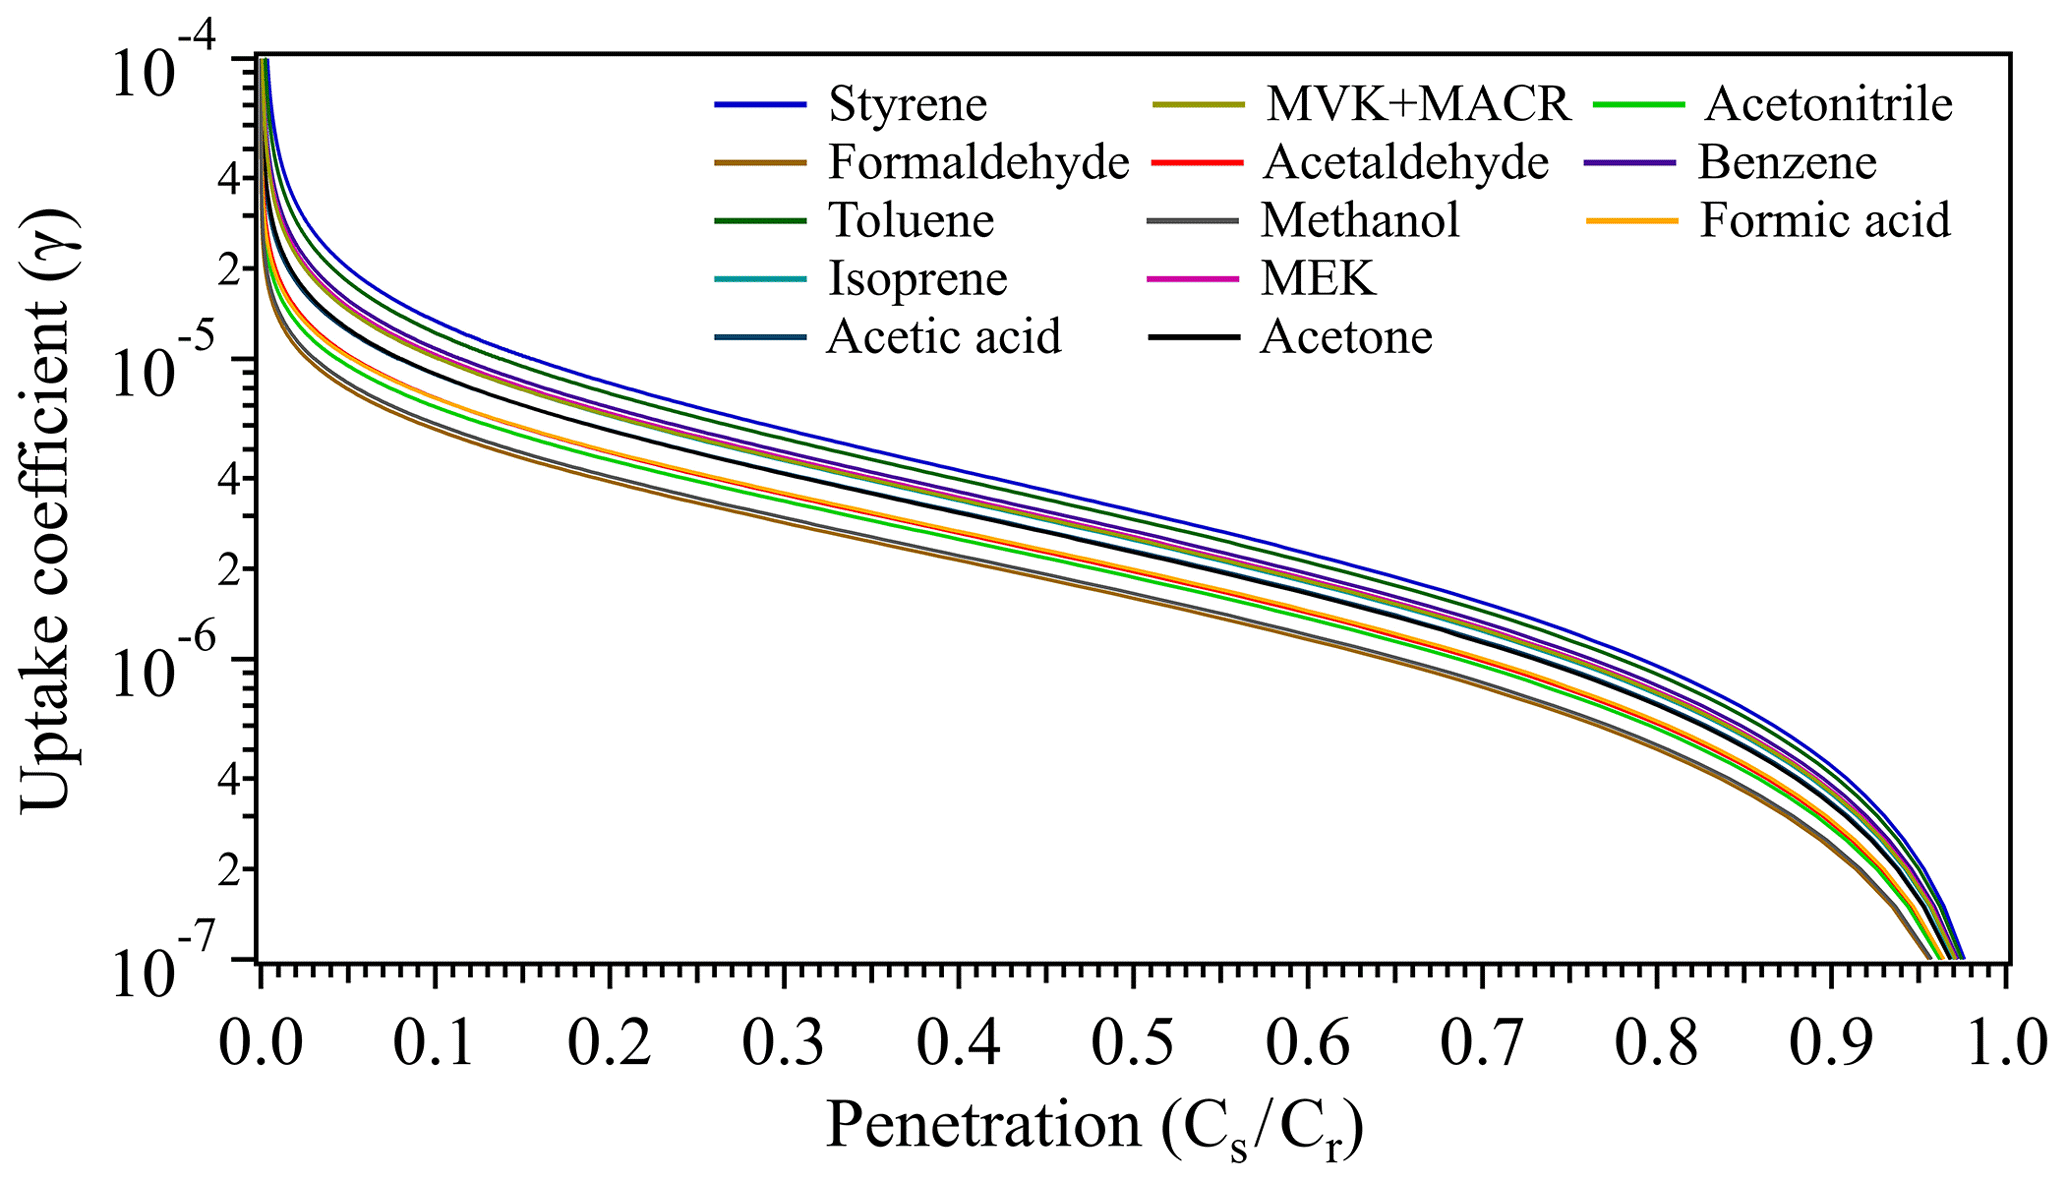 acp physicochemical uptake and release of volatile organics www atmos chem phys net 19